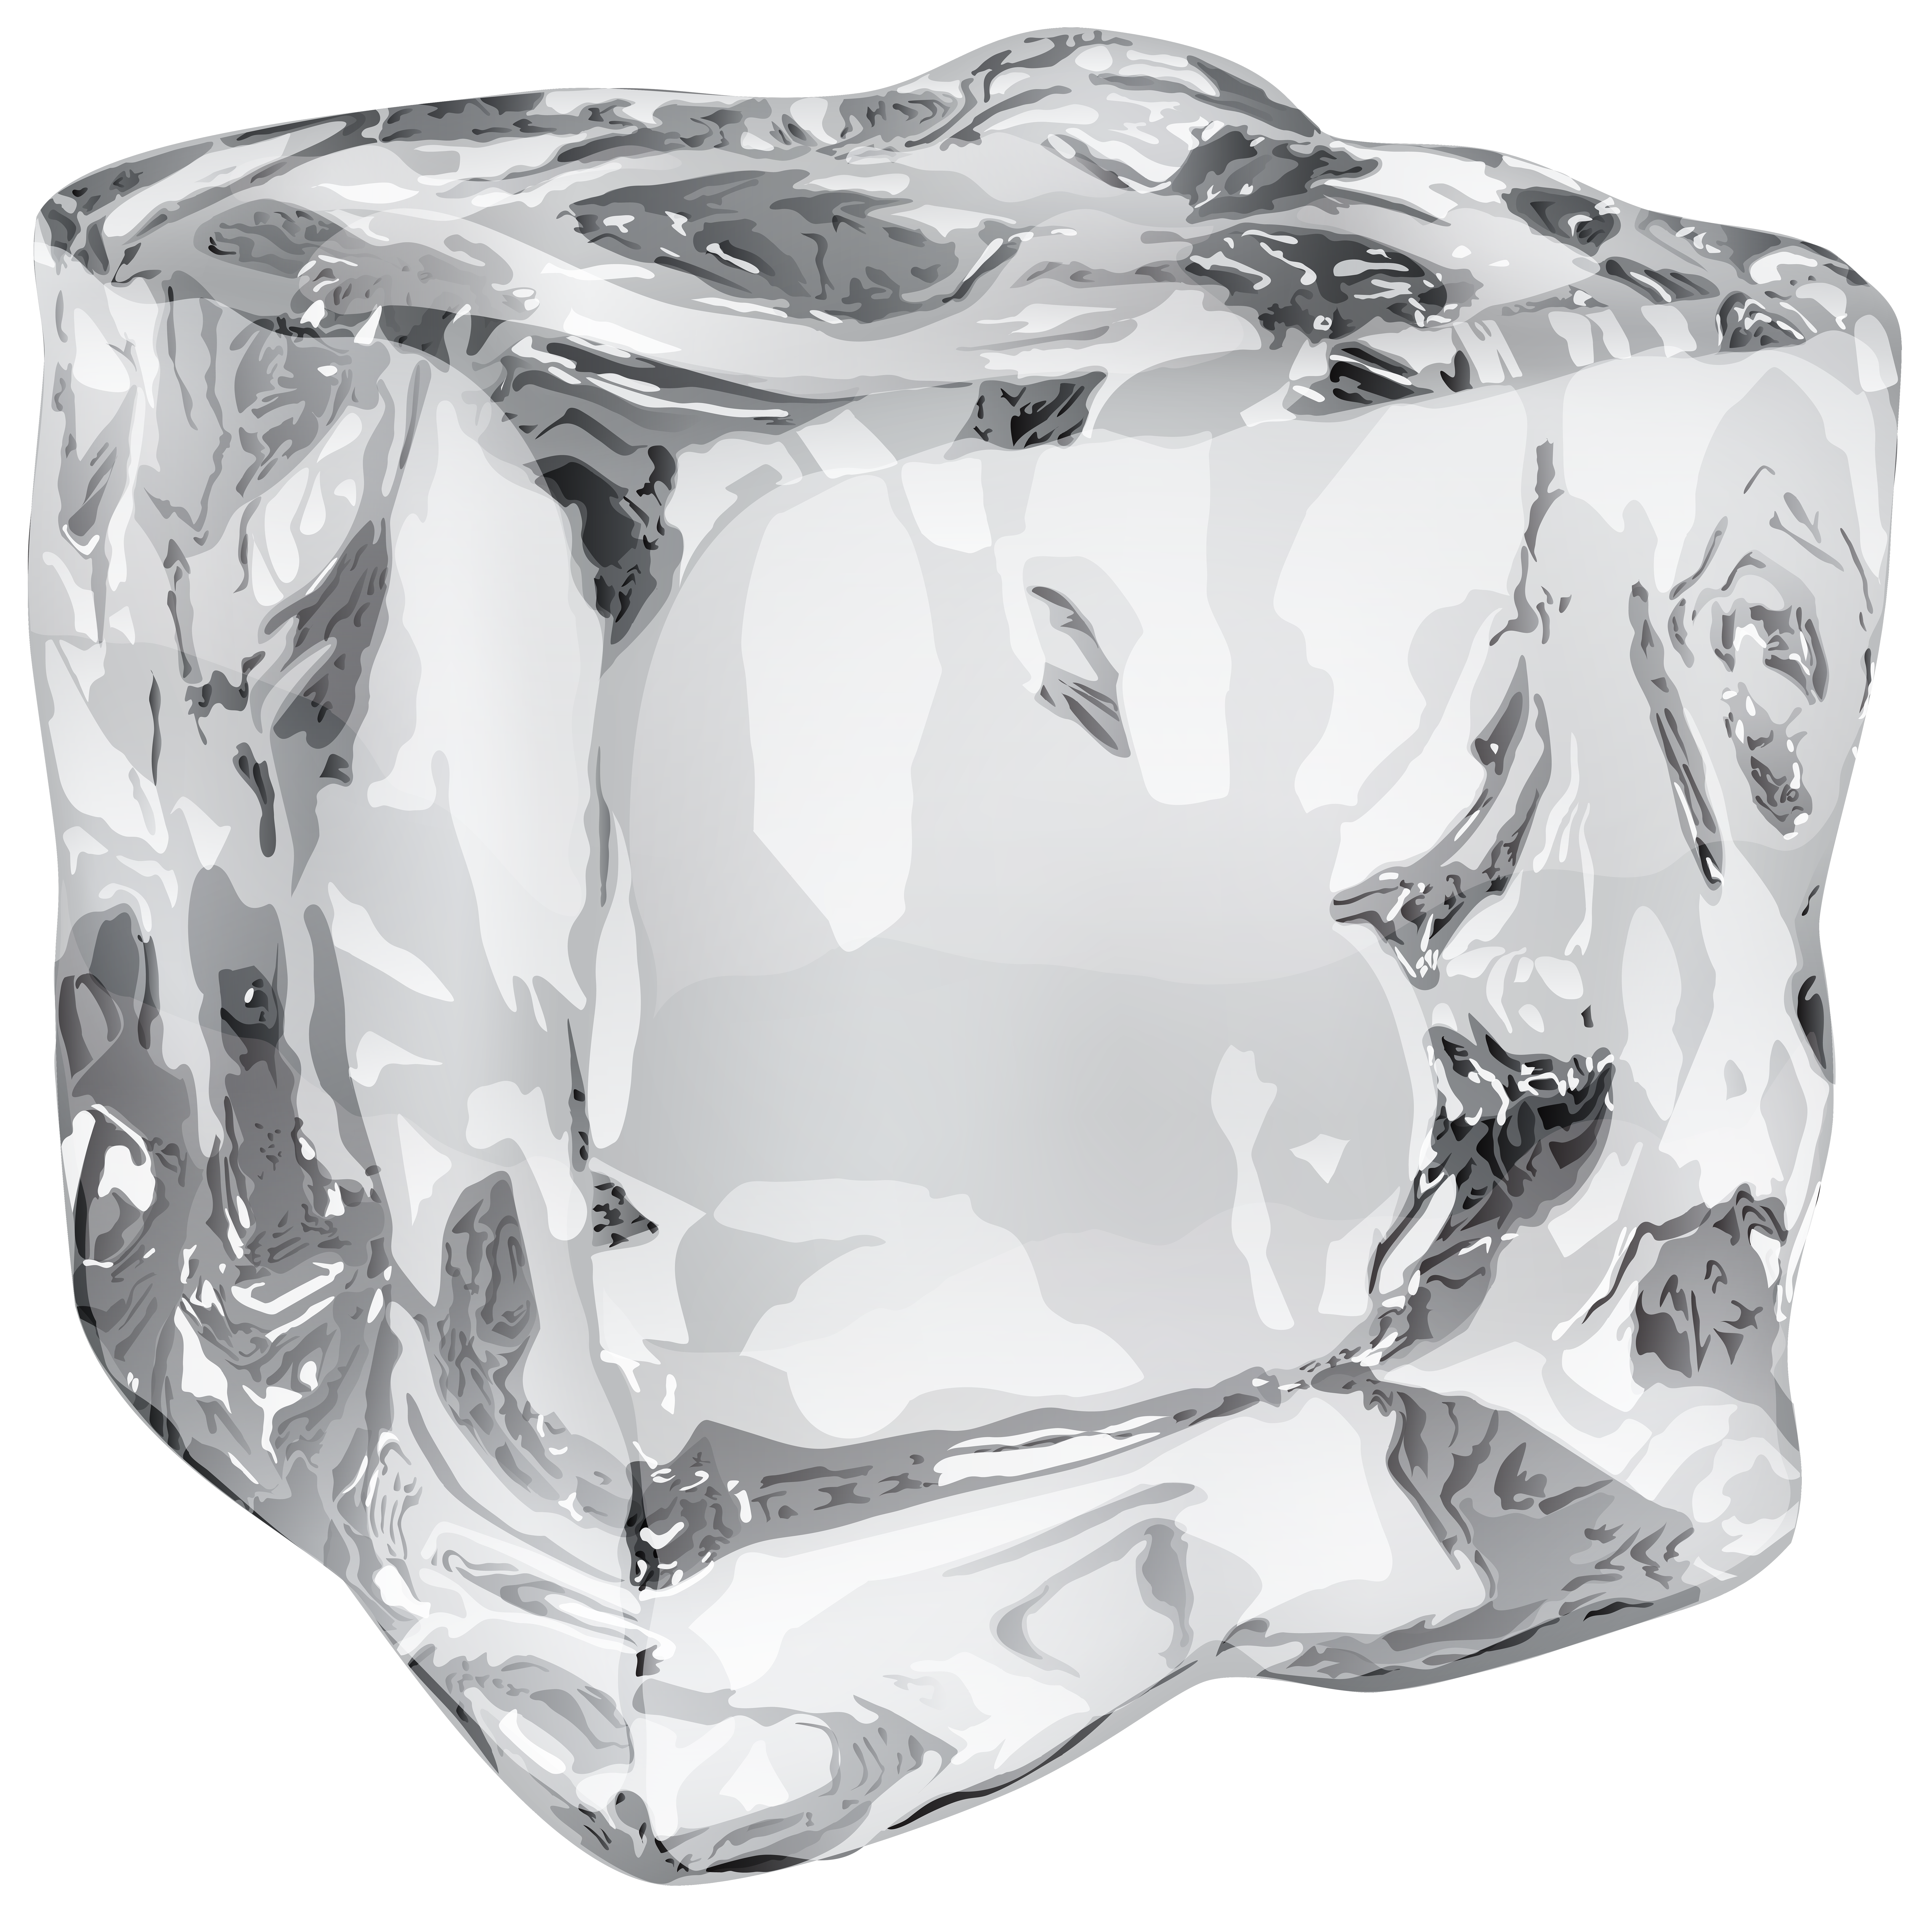 Ice Cube Clipart 2 Ice Png Ice Cube Drawing Ice Cube Clipart